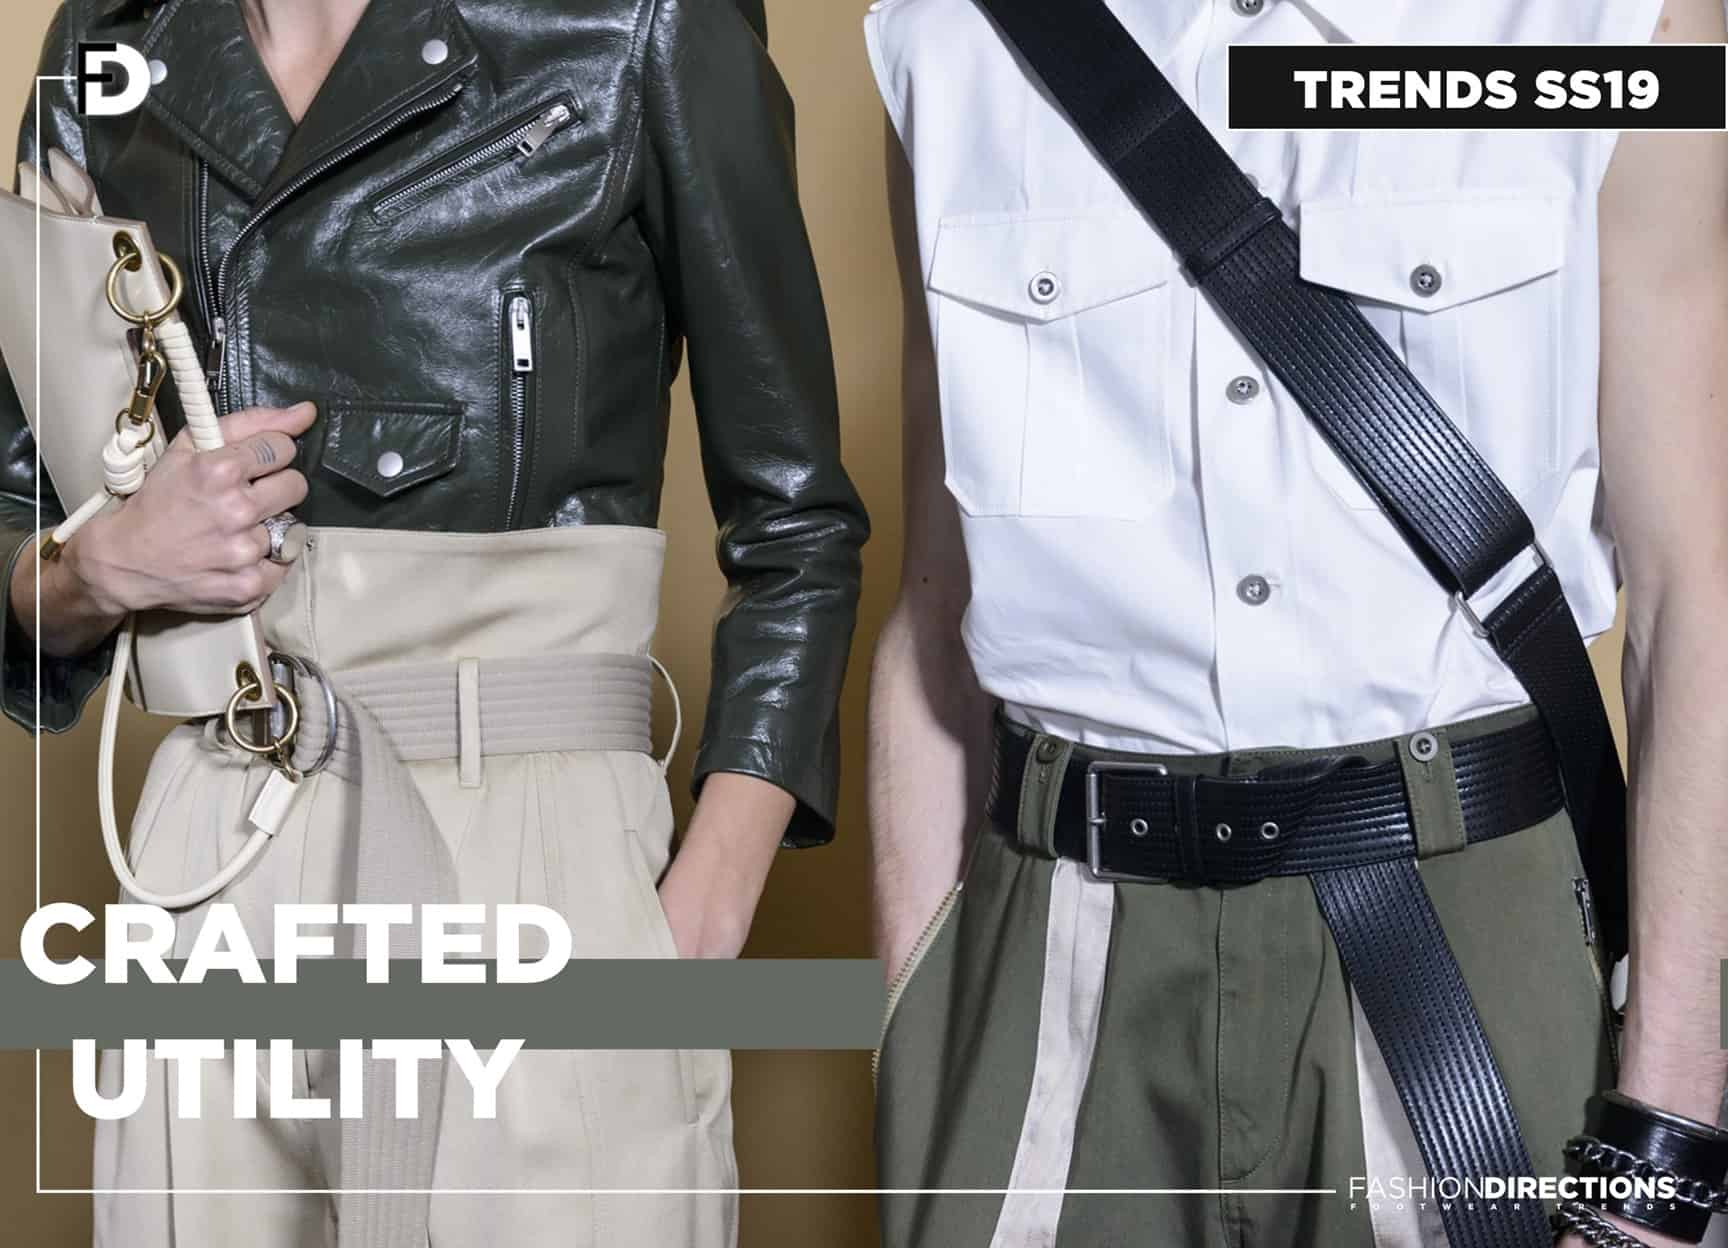 SS19 trends craft utility